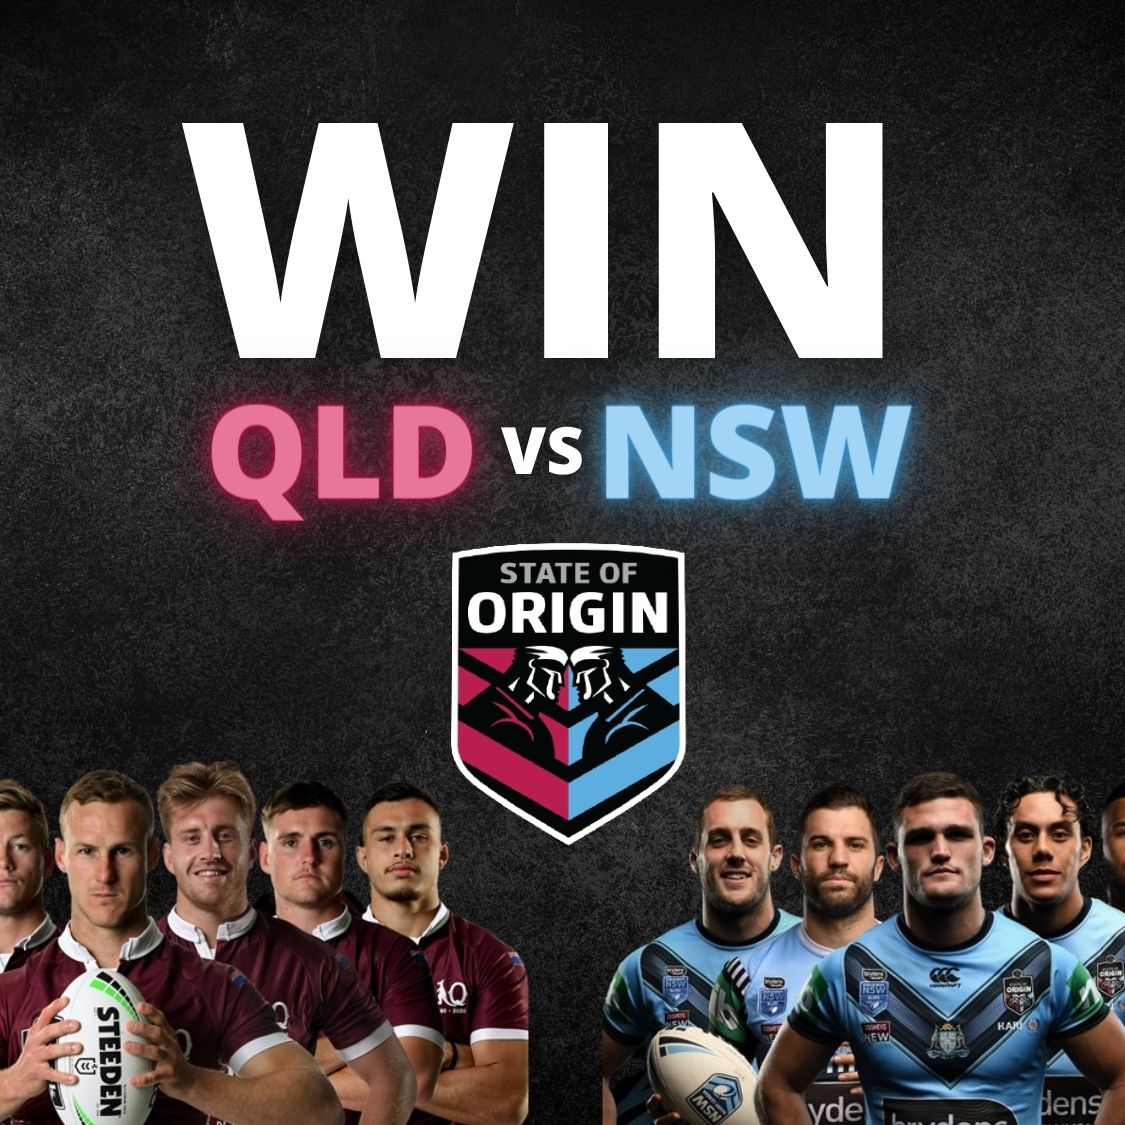 Win 2 tickets for the State of Origins match in Townsville